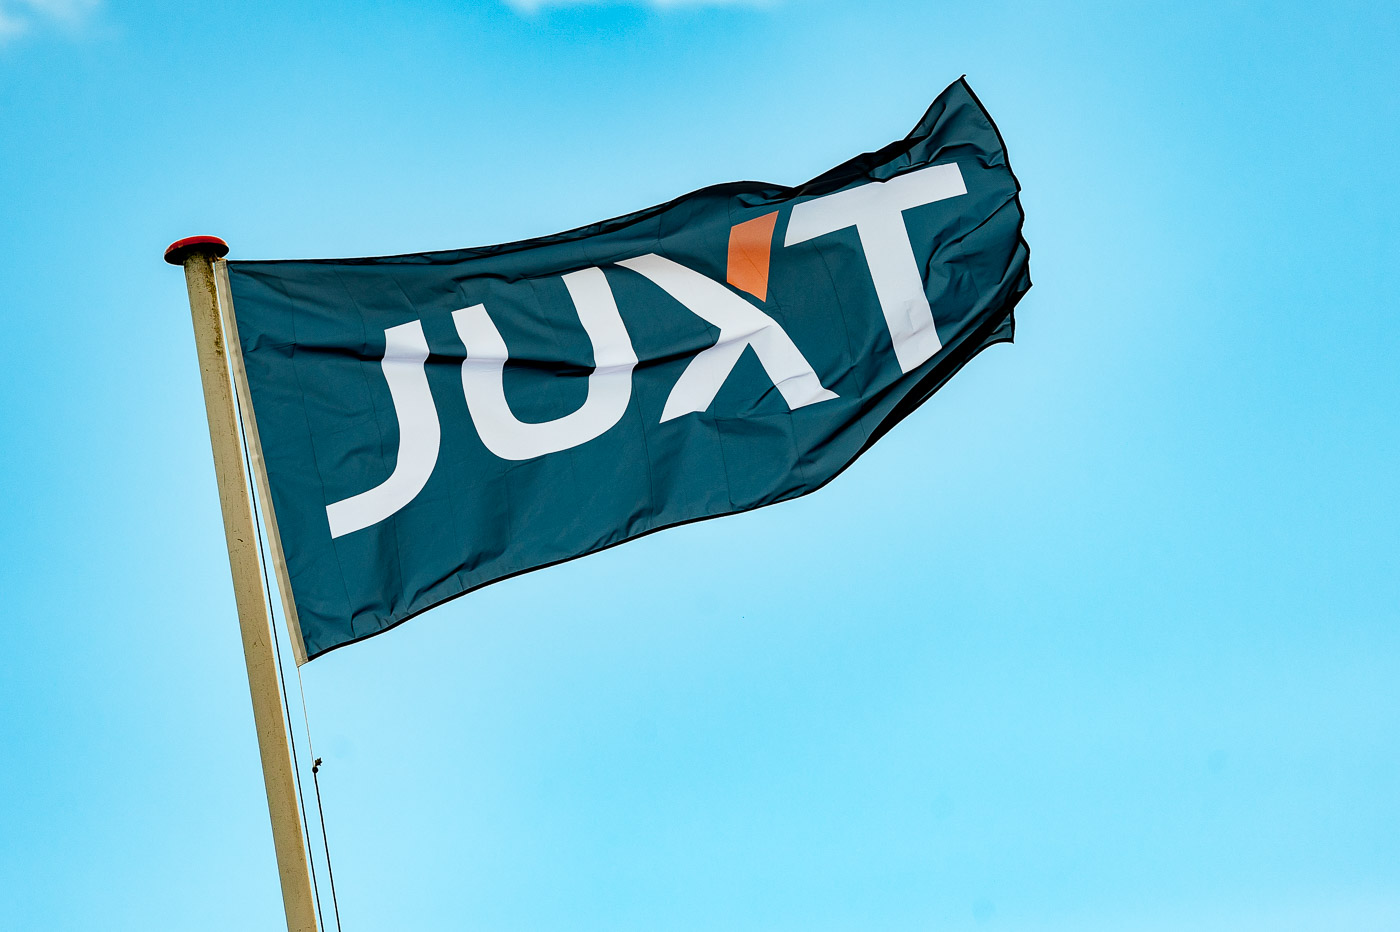 The JUXT flag flying proudly